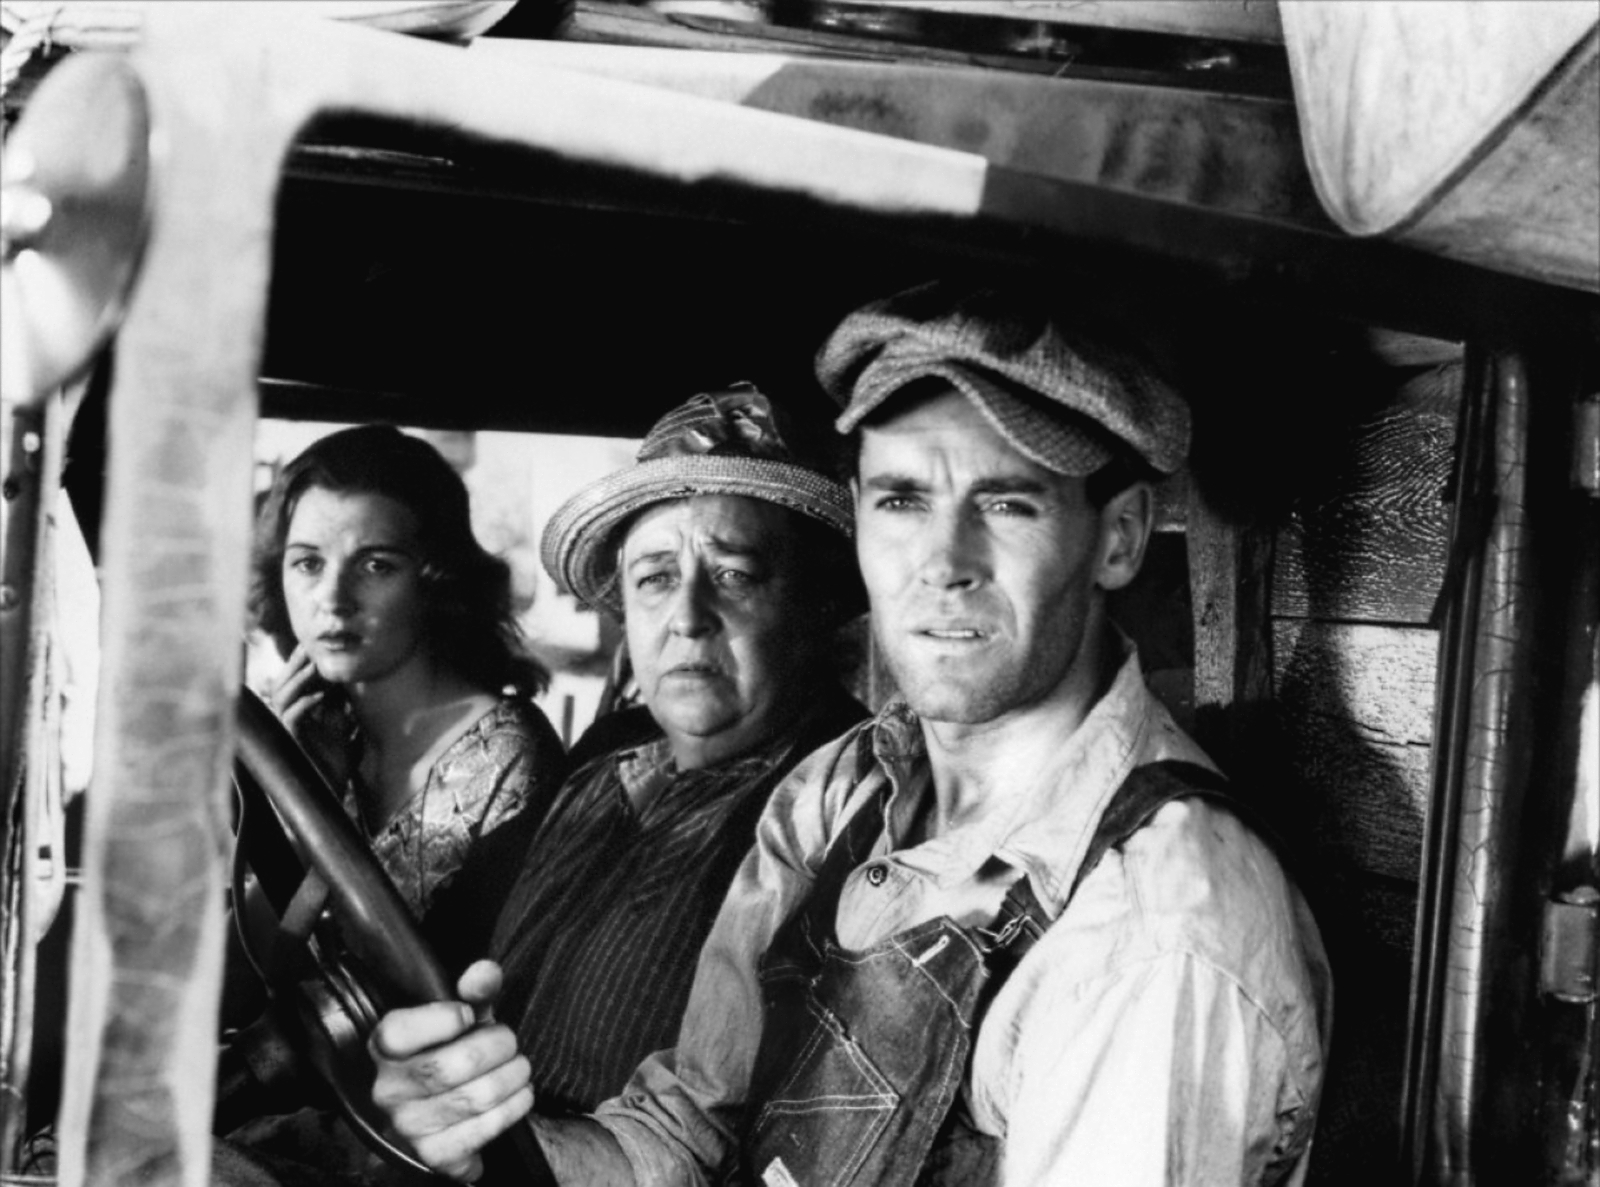 an analysis of the film the grapes of wrath A complete summary and analysis of the film the grapes of wrath by john steinbeck.